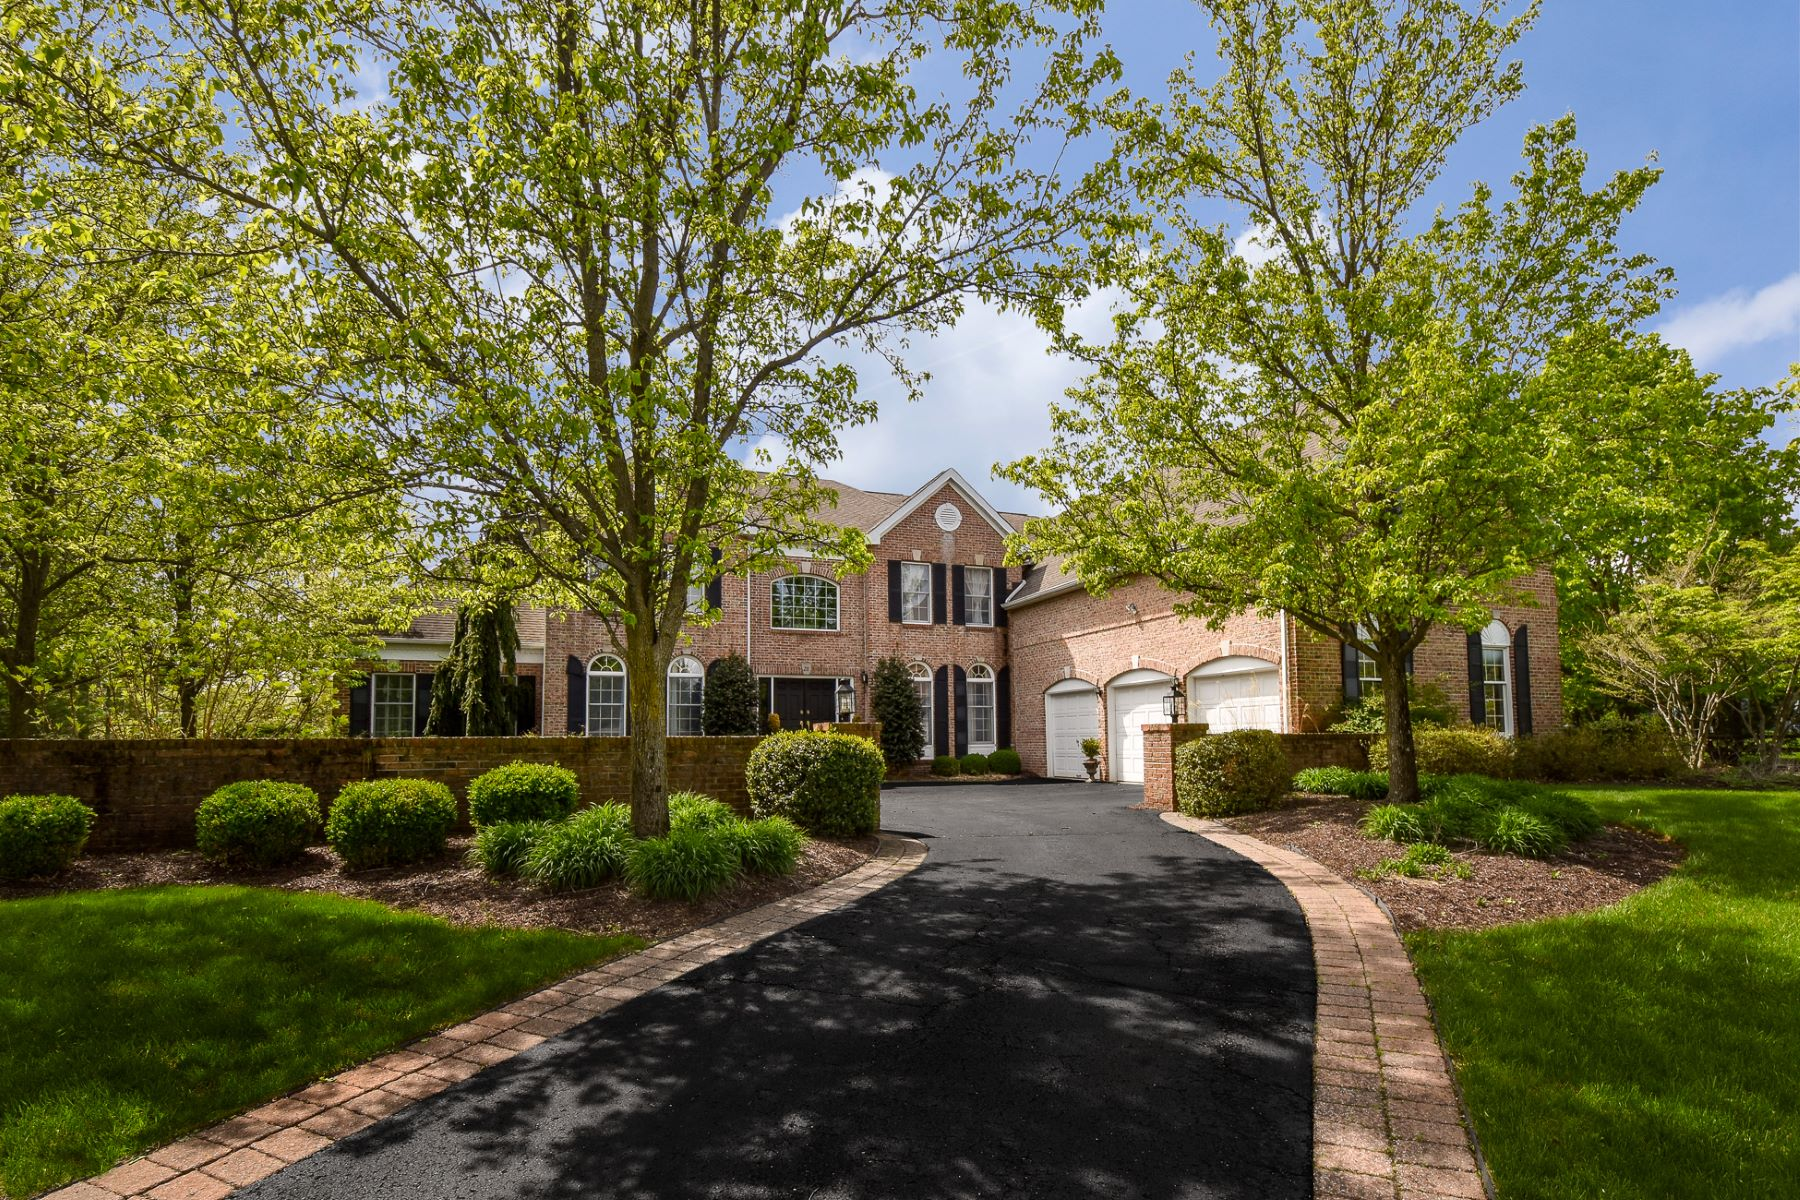 Property for Sale at Nothing Short Of Exquisite in Bedens Brook Estates 28 Green Meadow Road, Skillman, New Jersey 08558 United States